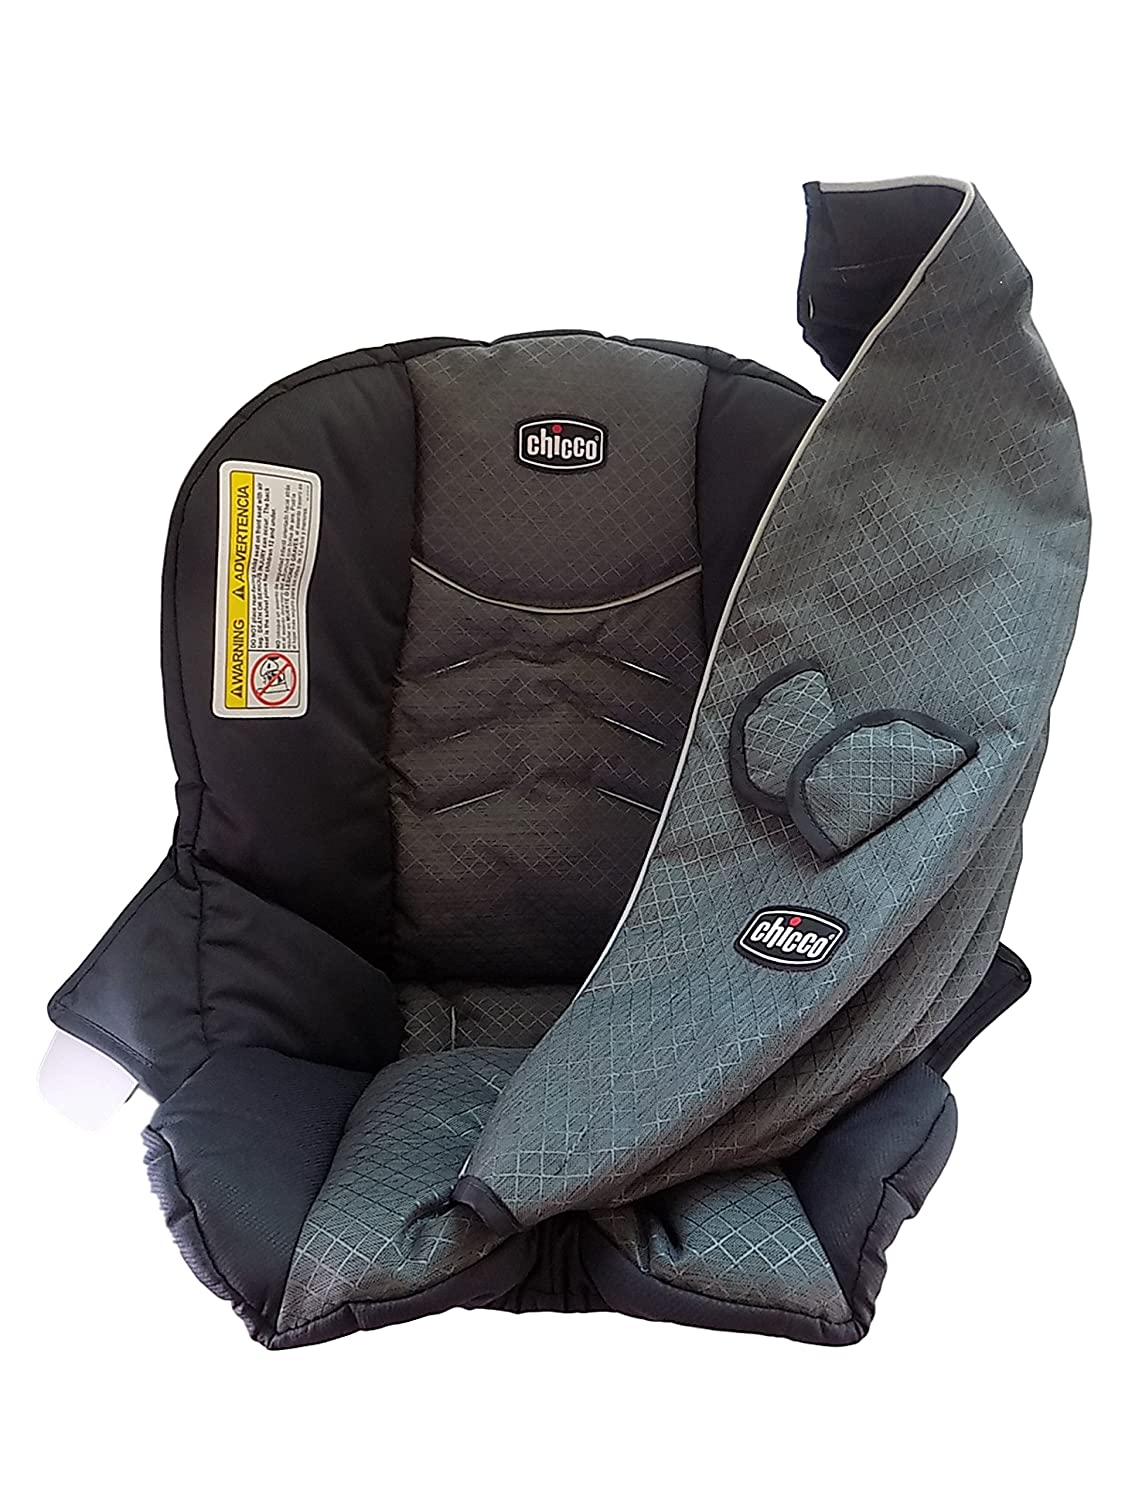 Replacement Chicco KeyFit 30 Infant Car Seat Cover Canopy And Pads